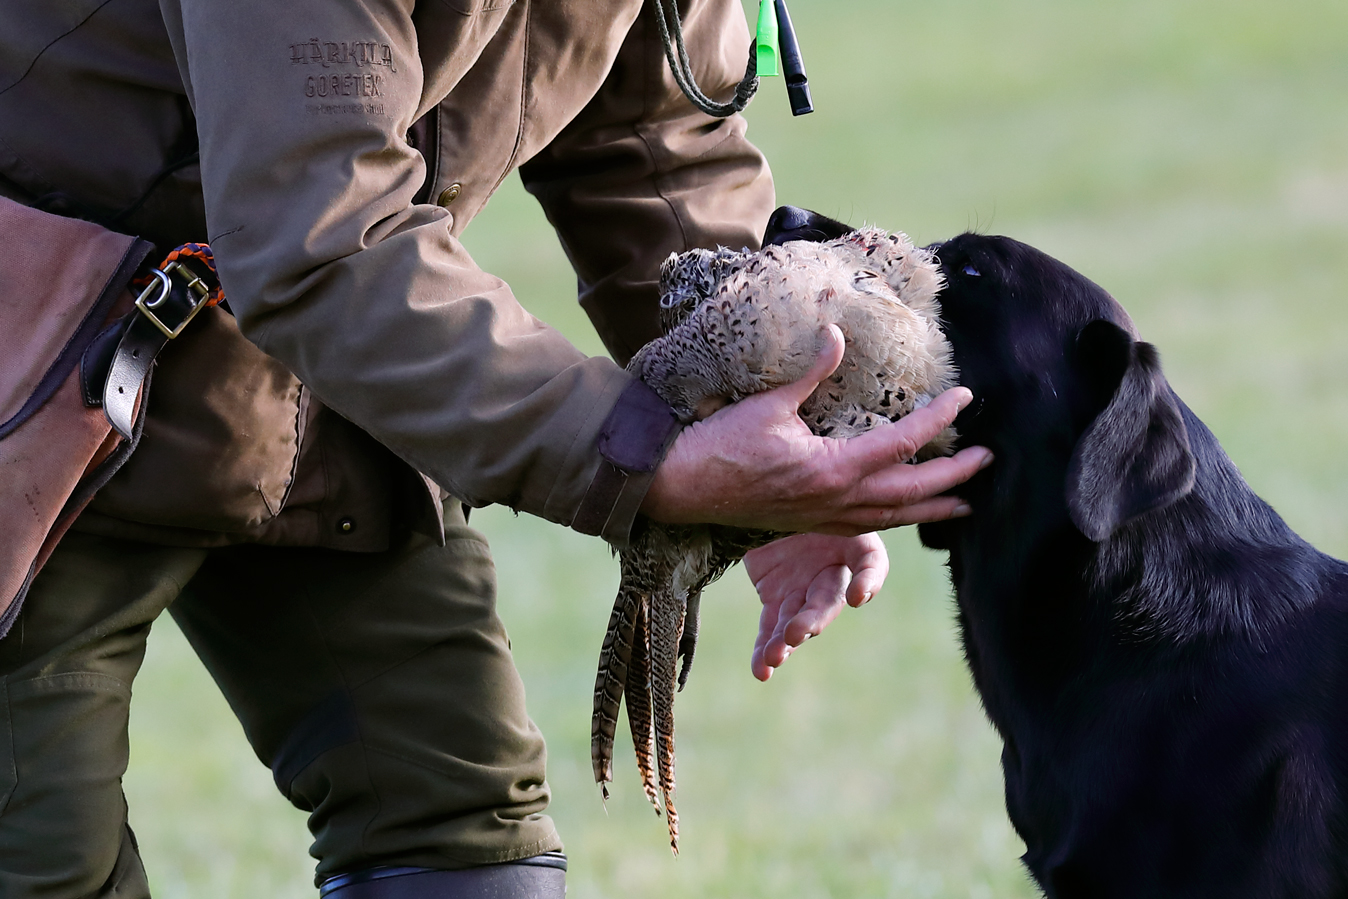 Field sports photography. Labrador retriever releases a hen pheasant to it's handler